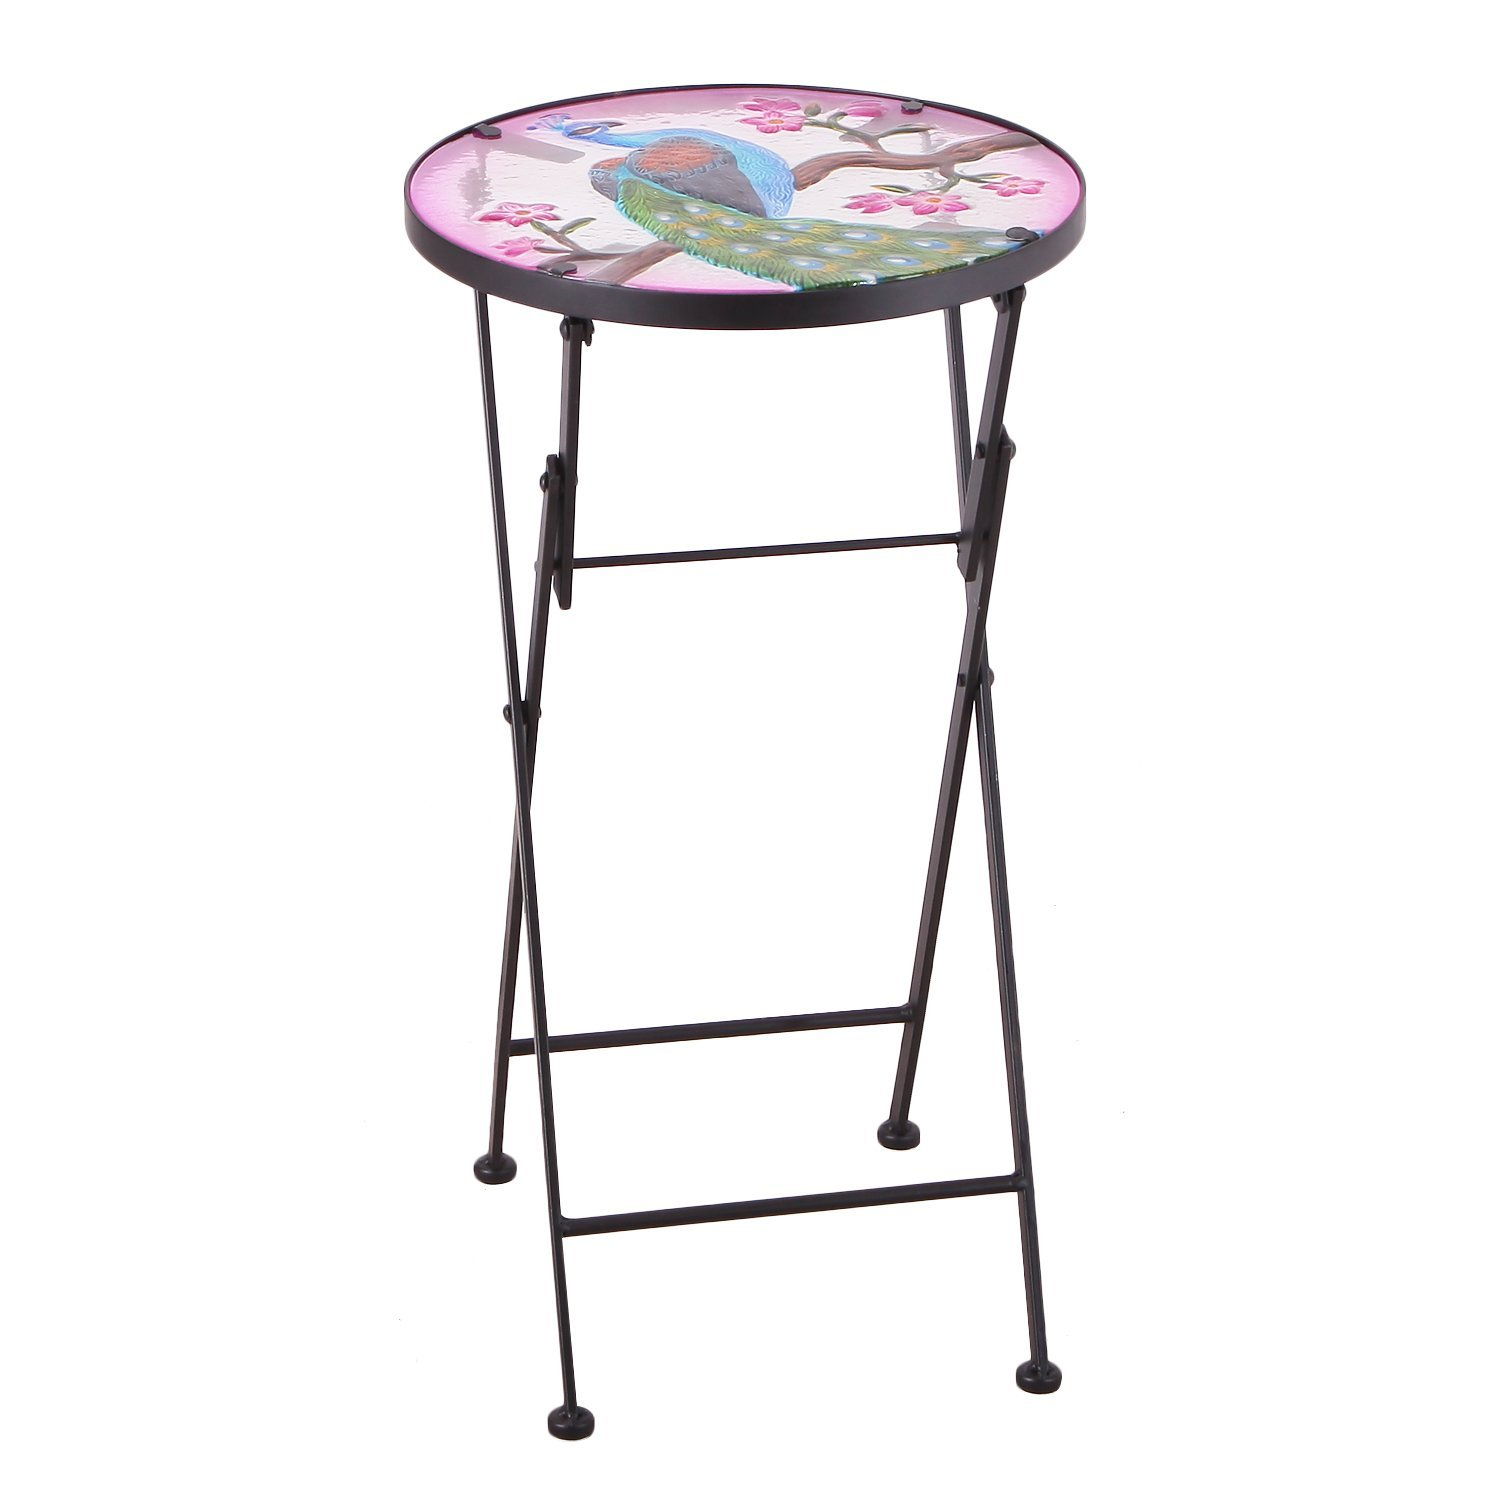 table top plant stand find bella green mosaic outdoor accent get quotations homebeez indoor foldable round side end folding for geometric lamp patio umbrella replacement garden